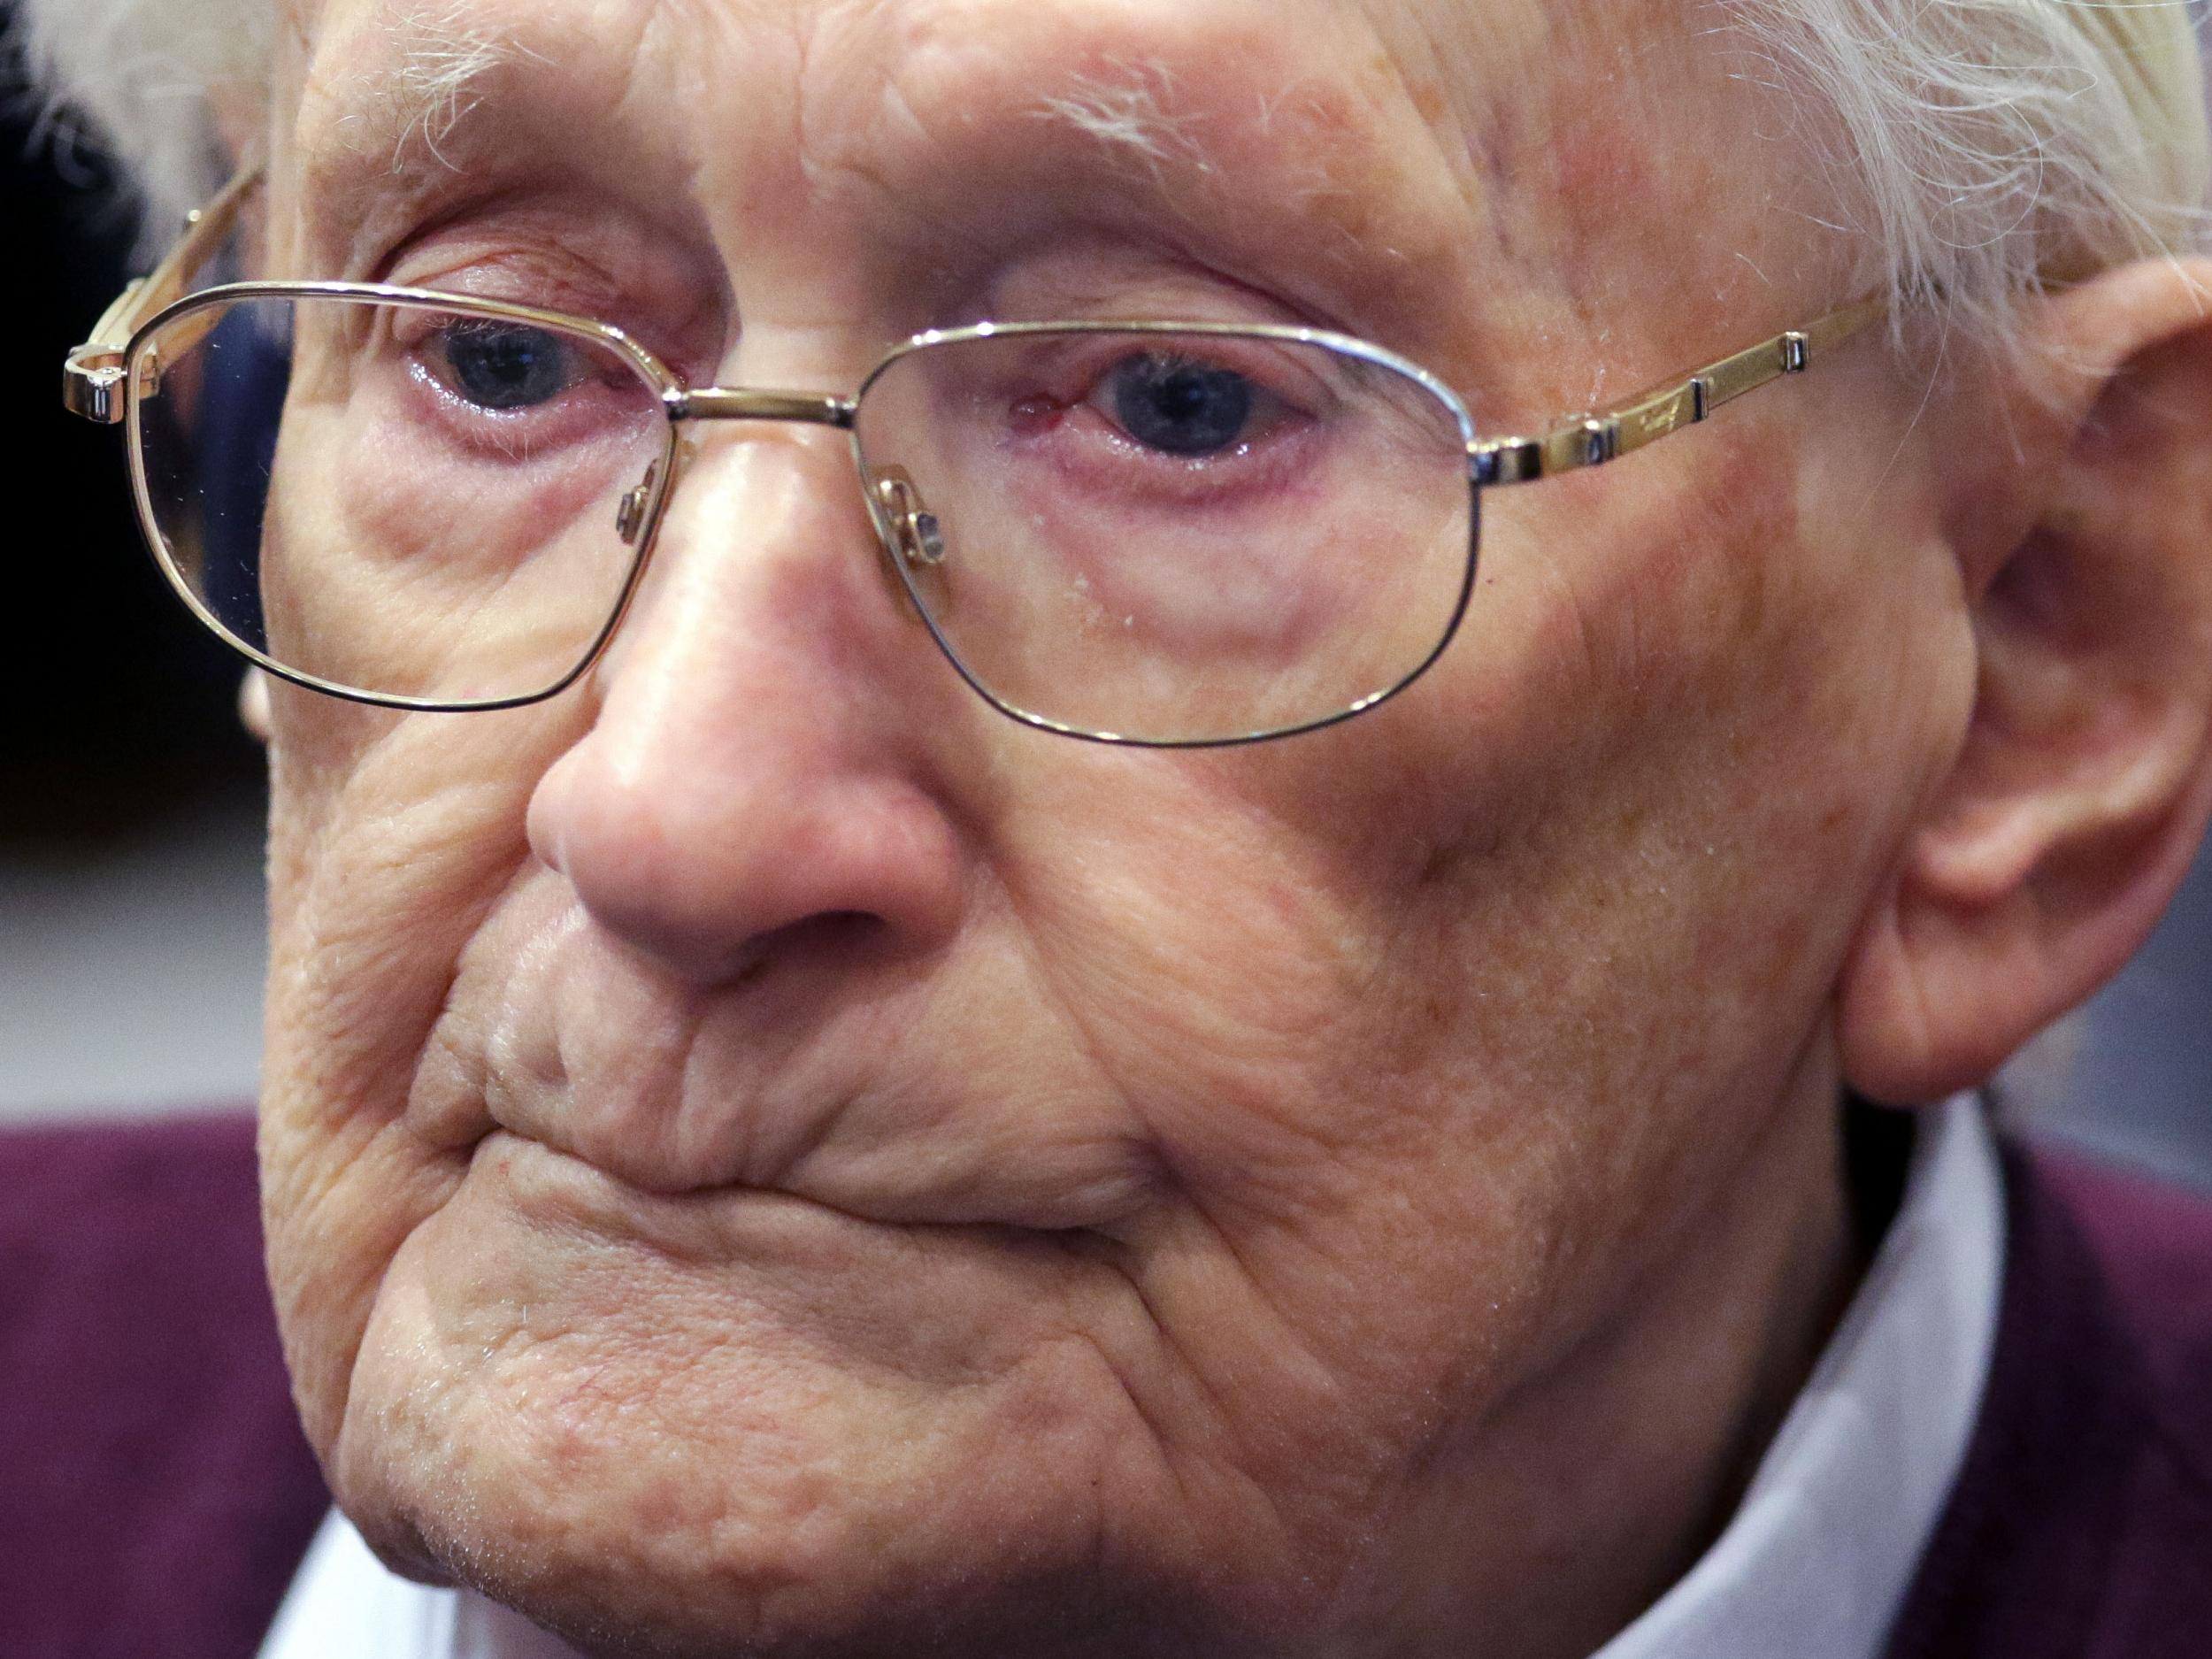 The 'bookkeeper of Auschwitz' dies before starting prison sentence